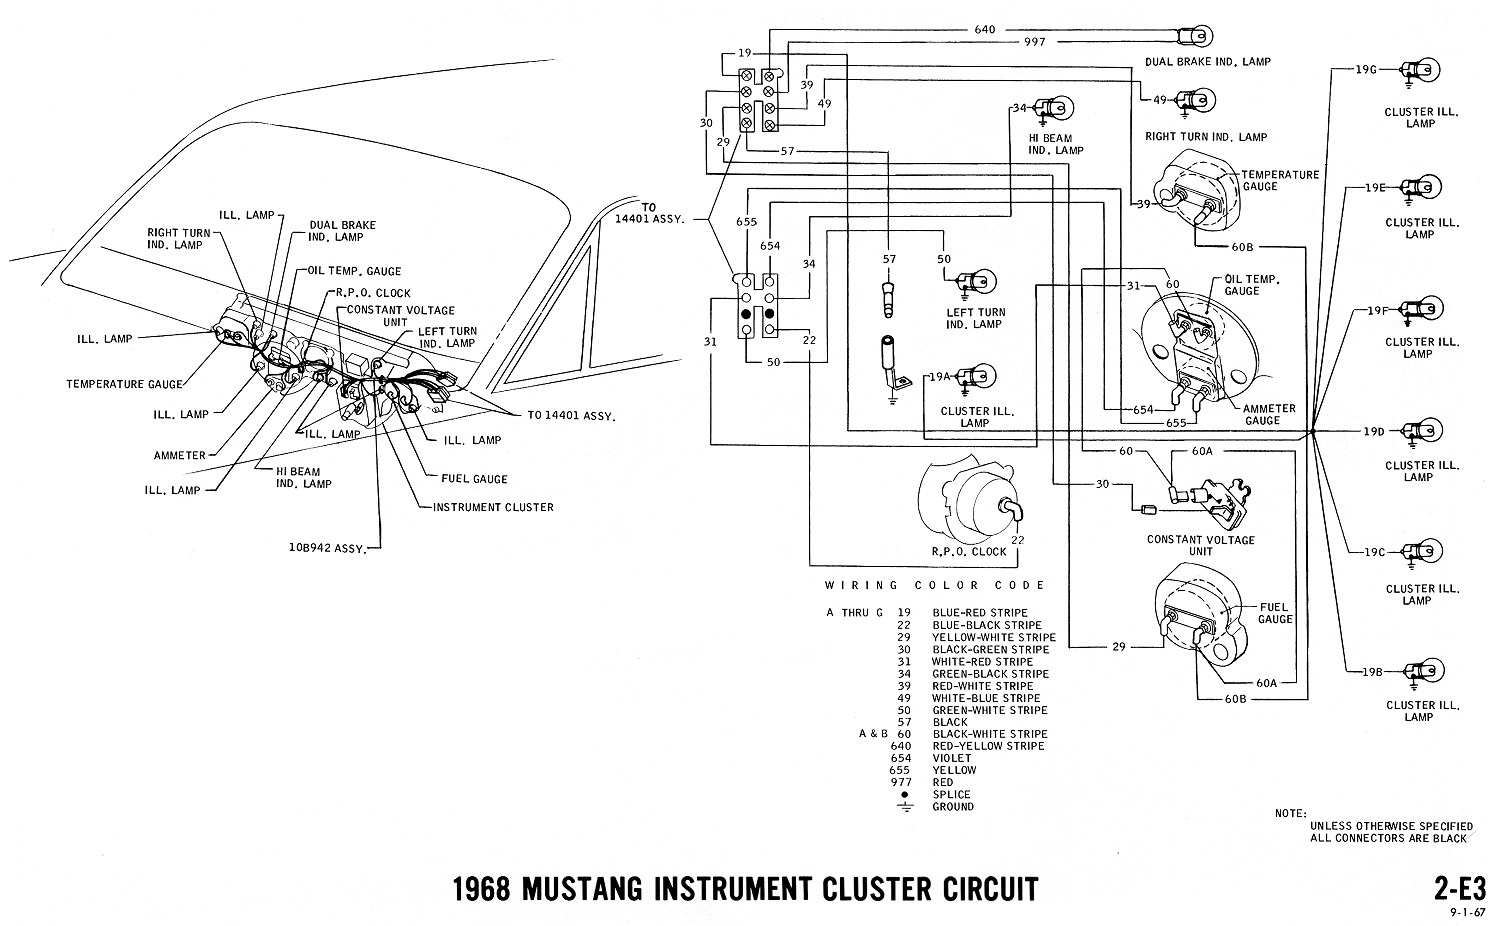 Conditioning Wiring Diagram On 68 Firebird Engine Diagram Of Parts